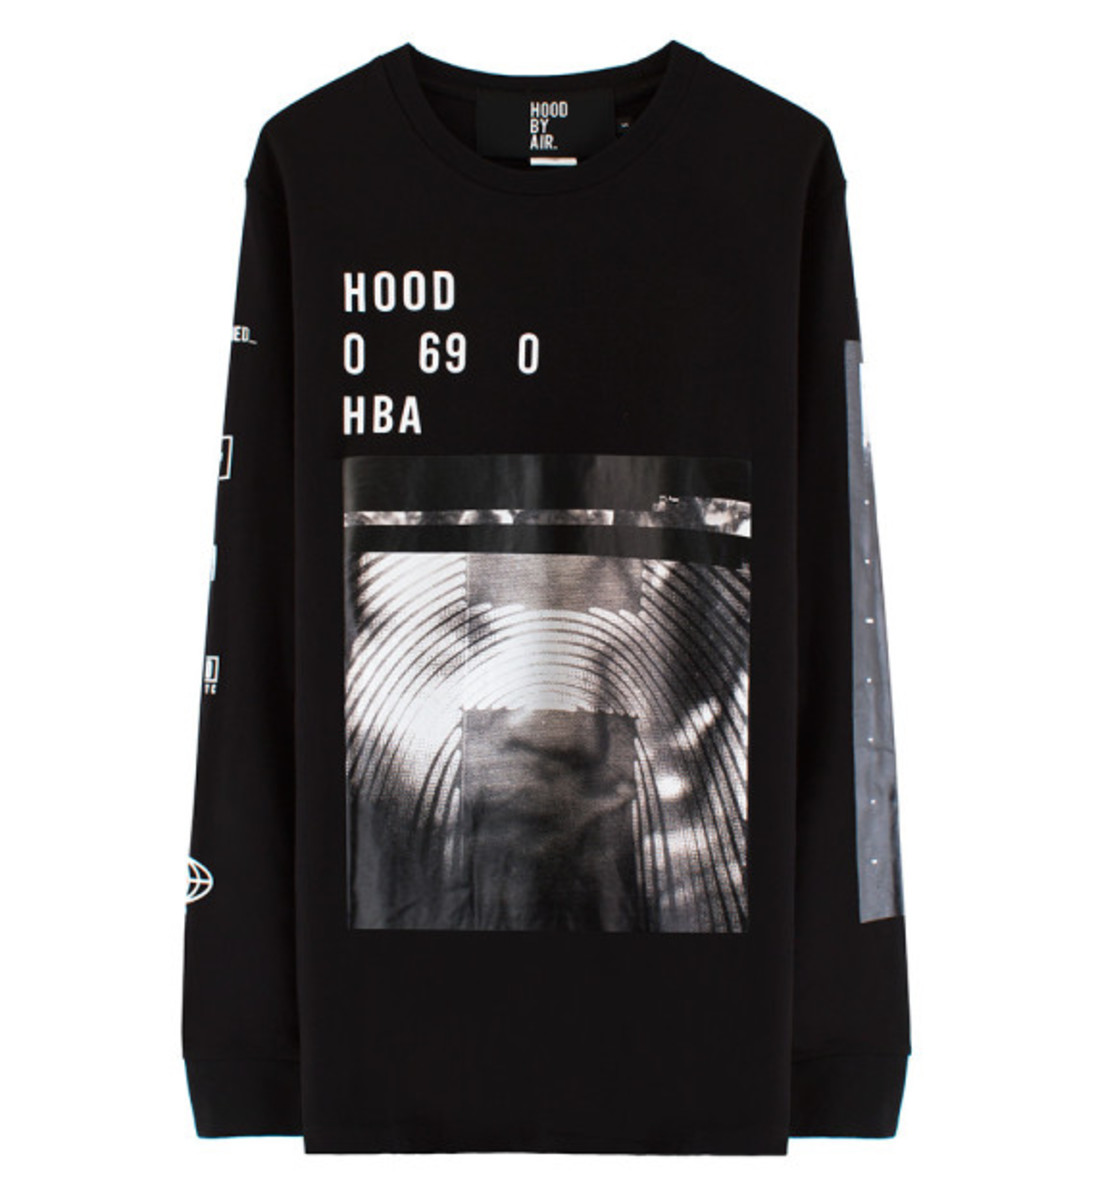 hood-by-air-fall-2014-vfiles-exclusive-collection-02